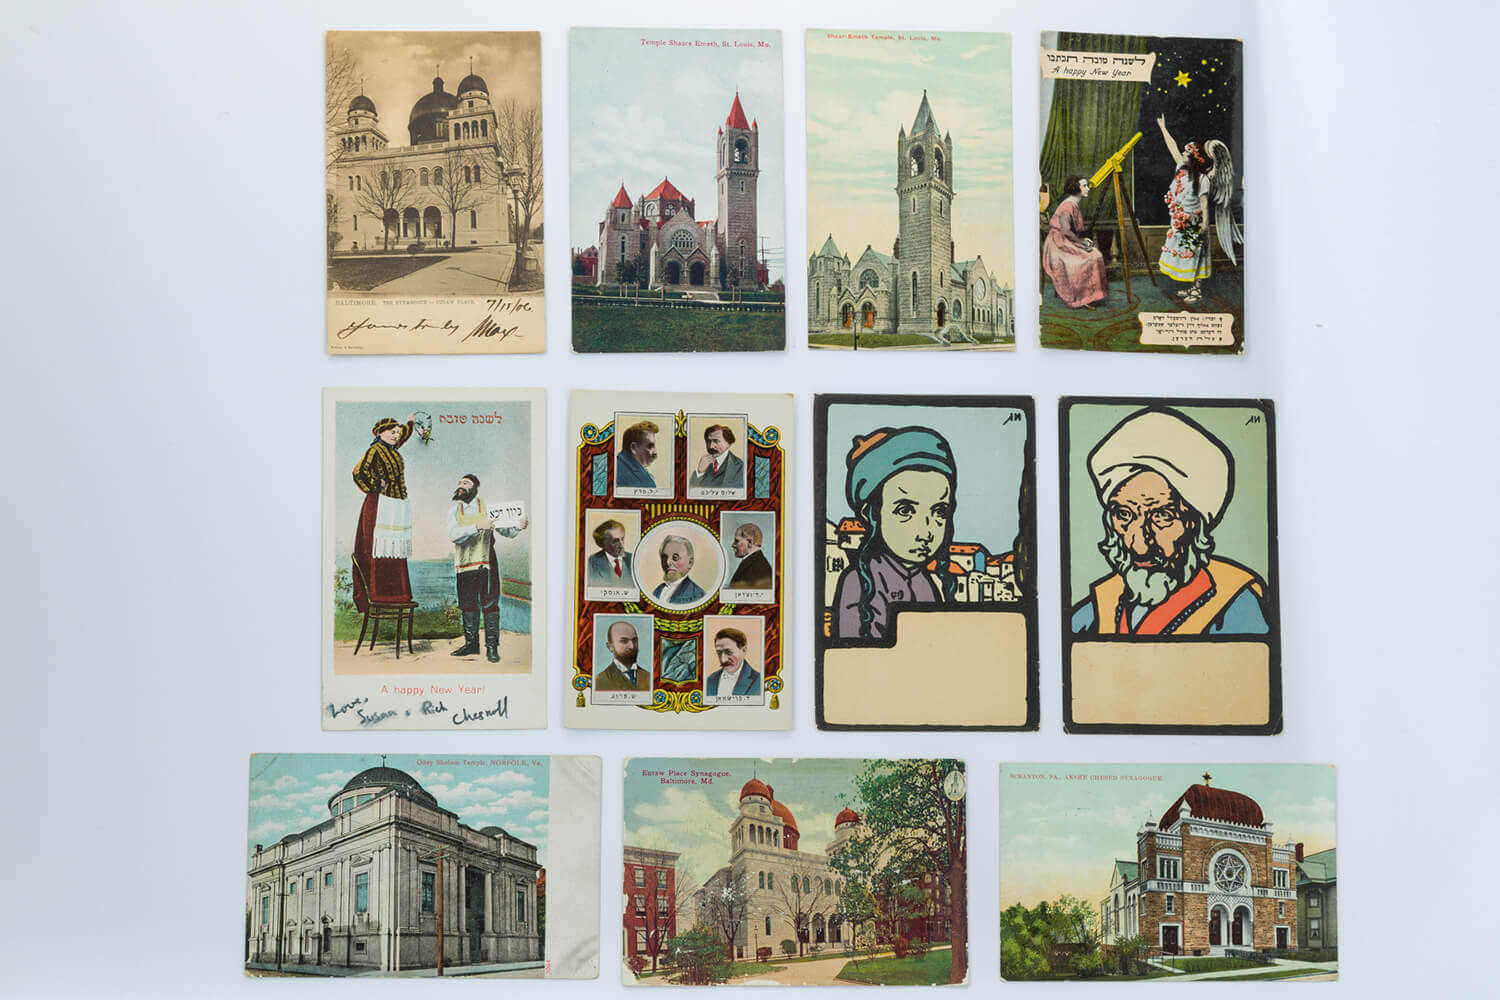 195. A LARGE COLLECTION OF 66 SYNAGOGUE AND JEWISH RELATED POSTCARDS